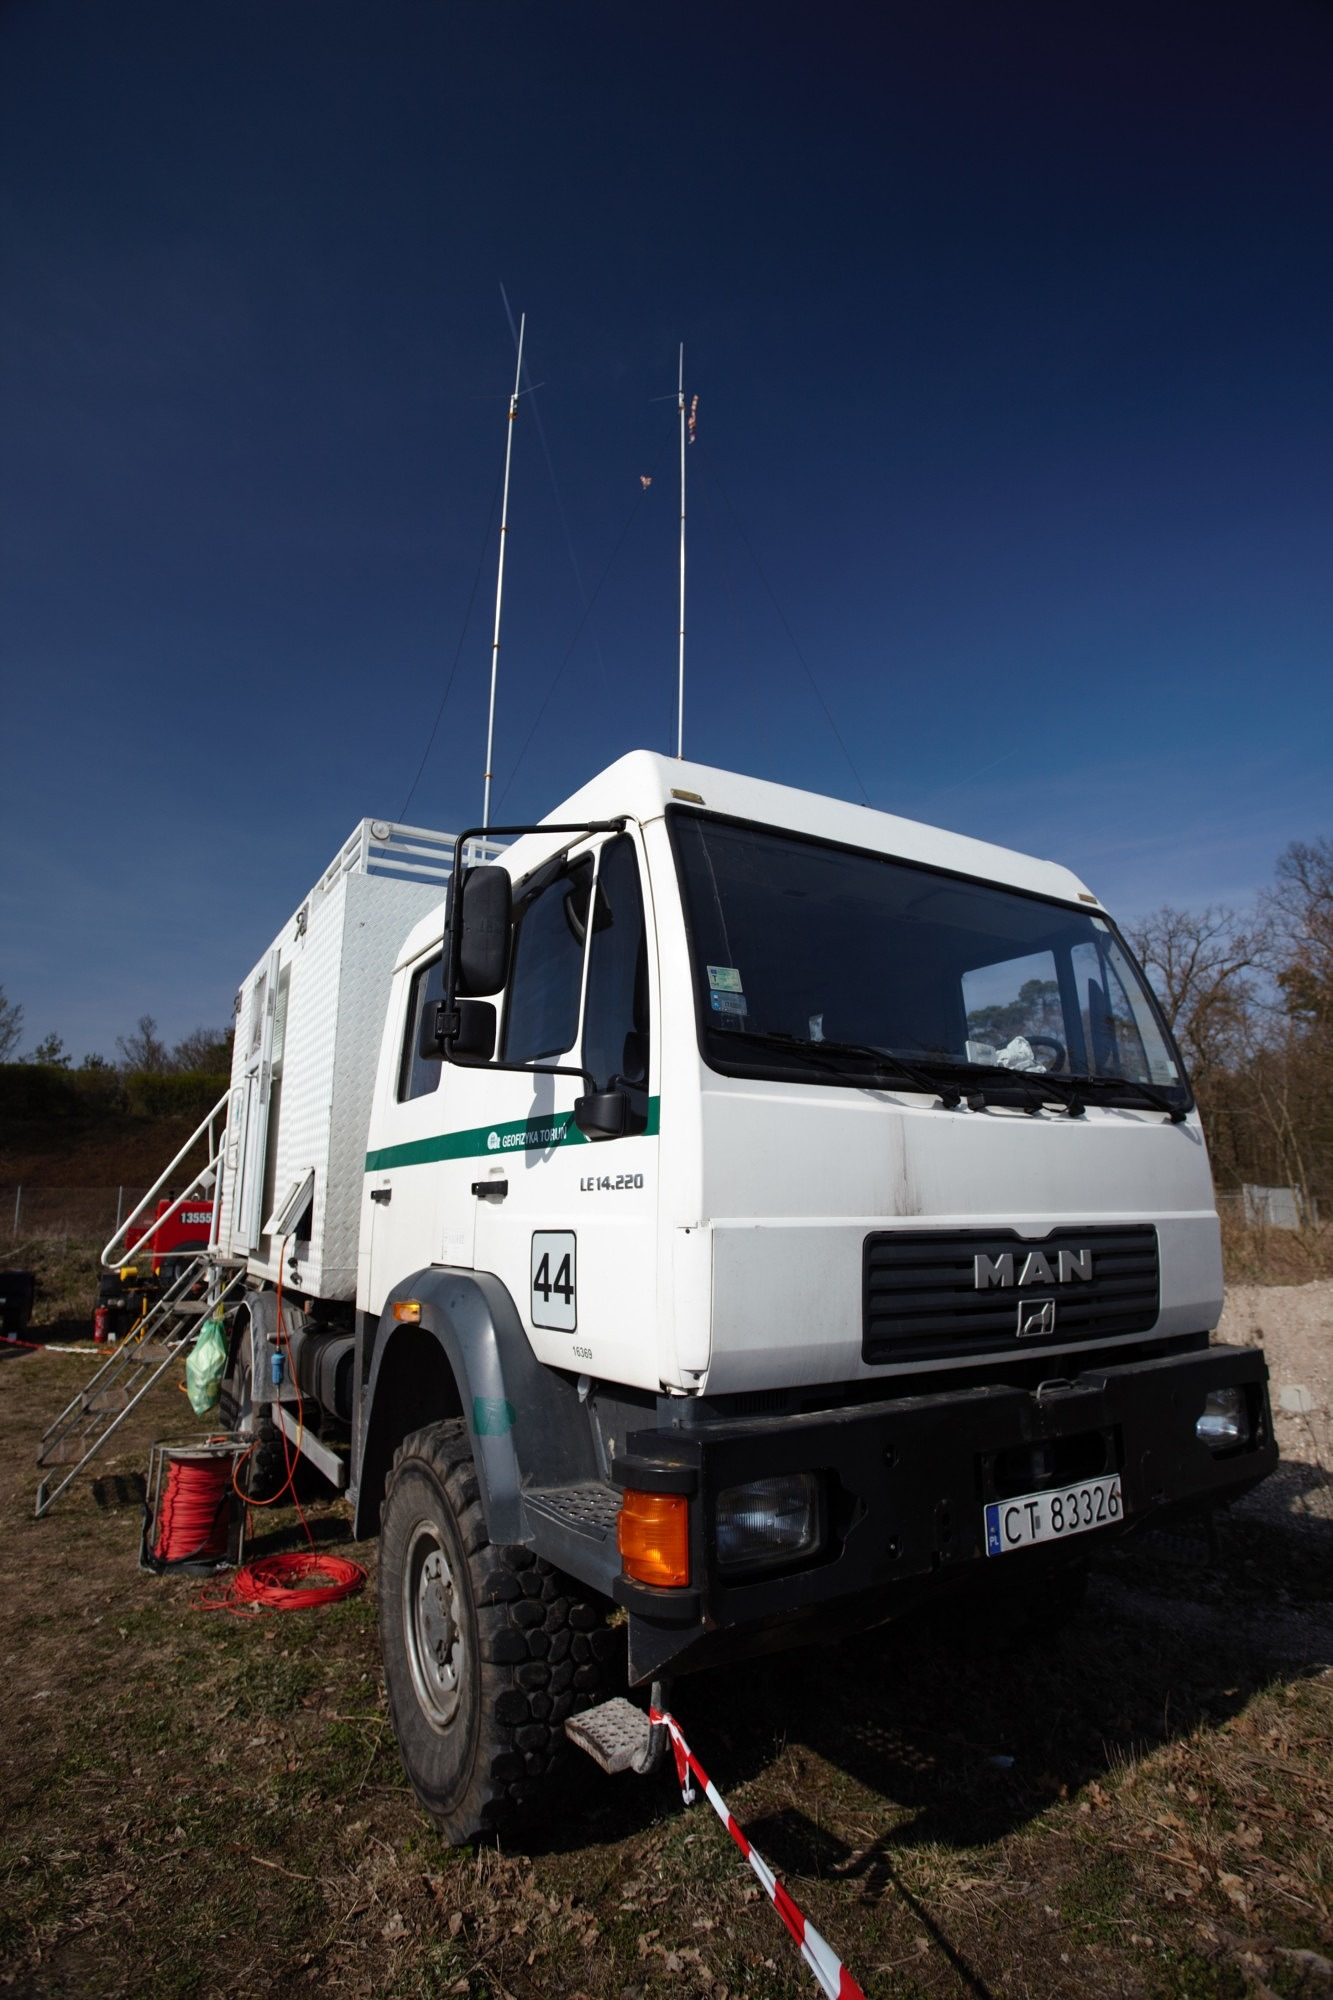 Recording truck for seismic measurements (Photo: Wolfgang Bauer)